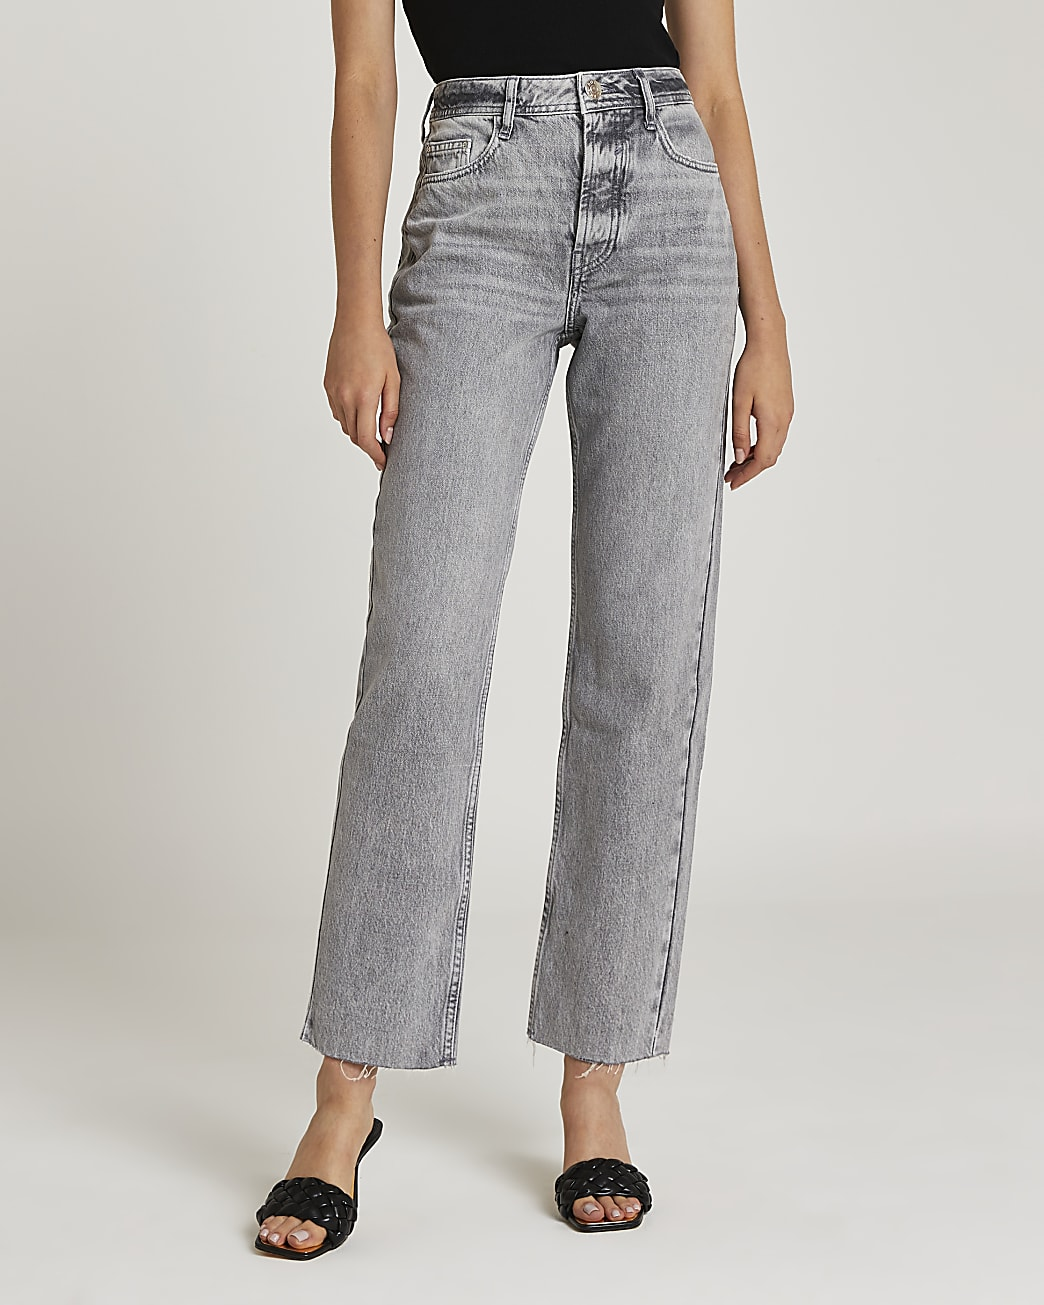 Grey mid rise straight jeans